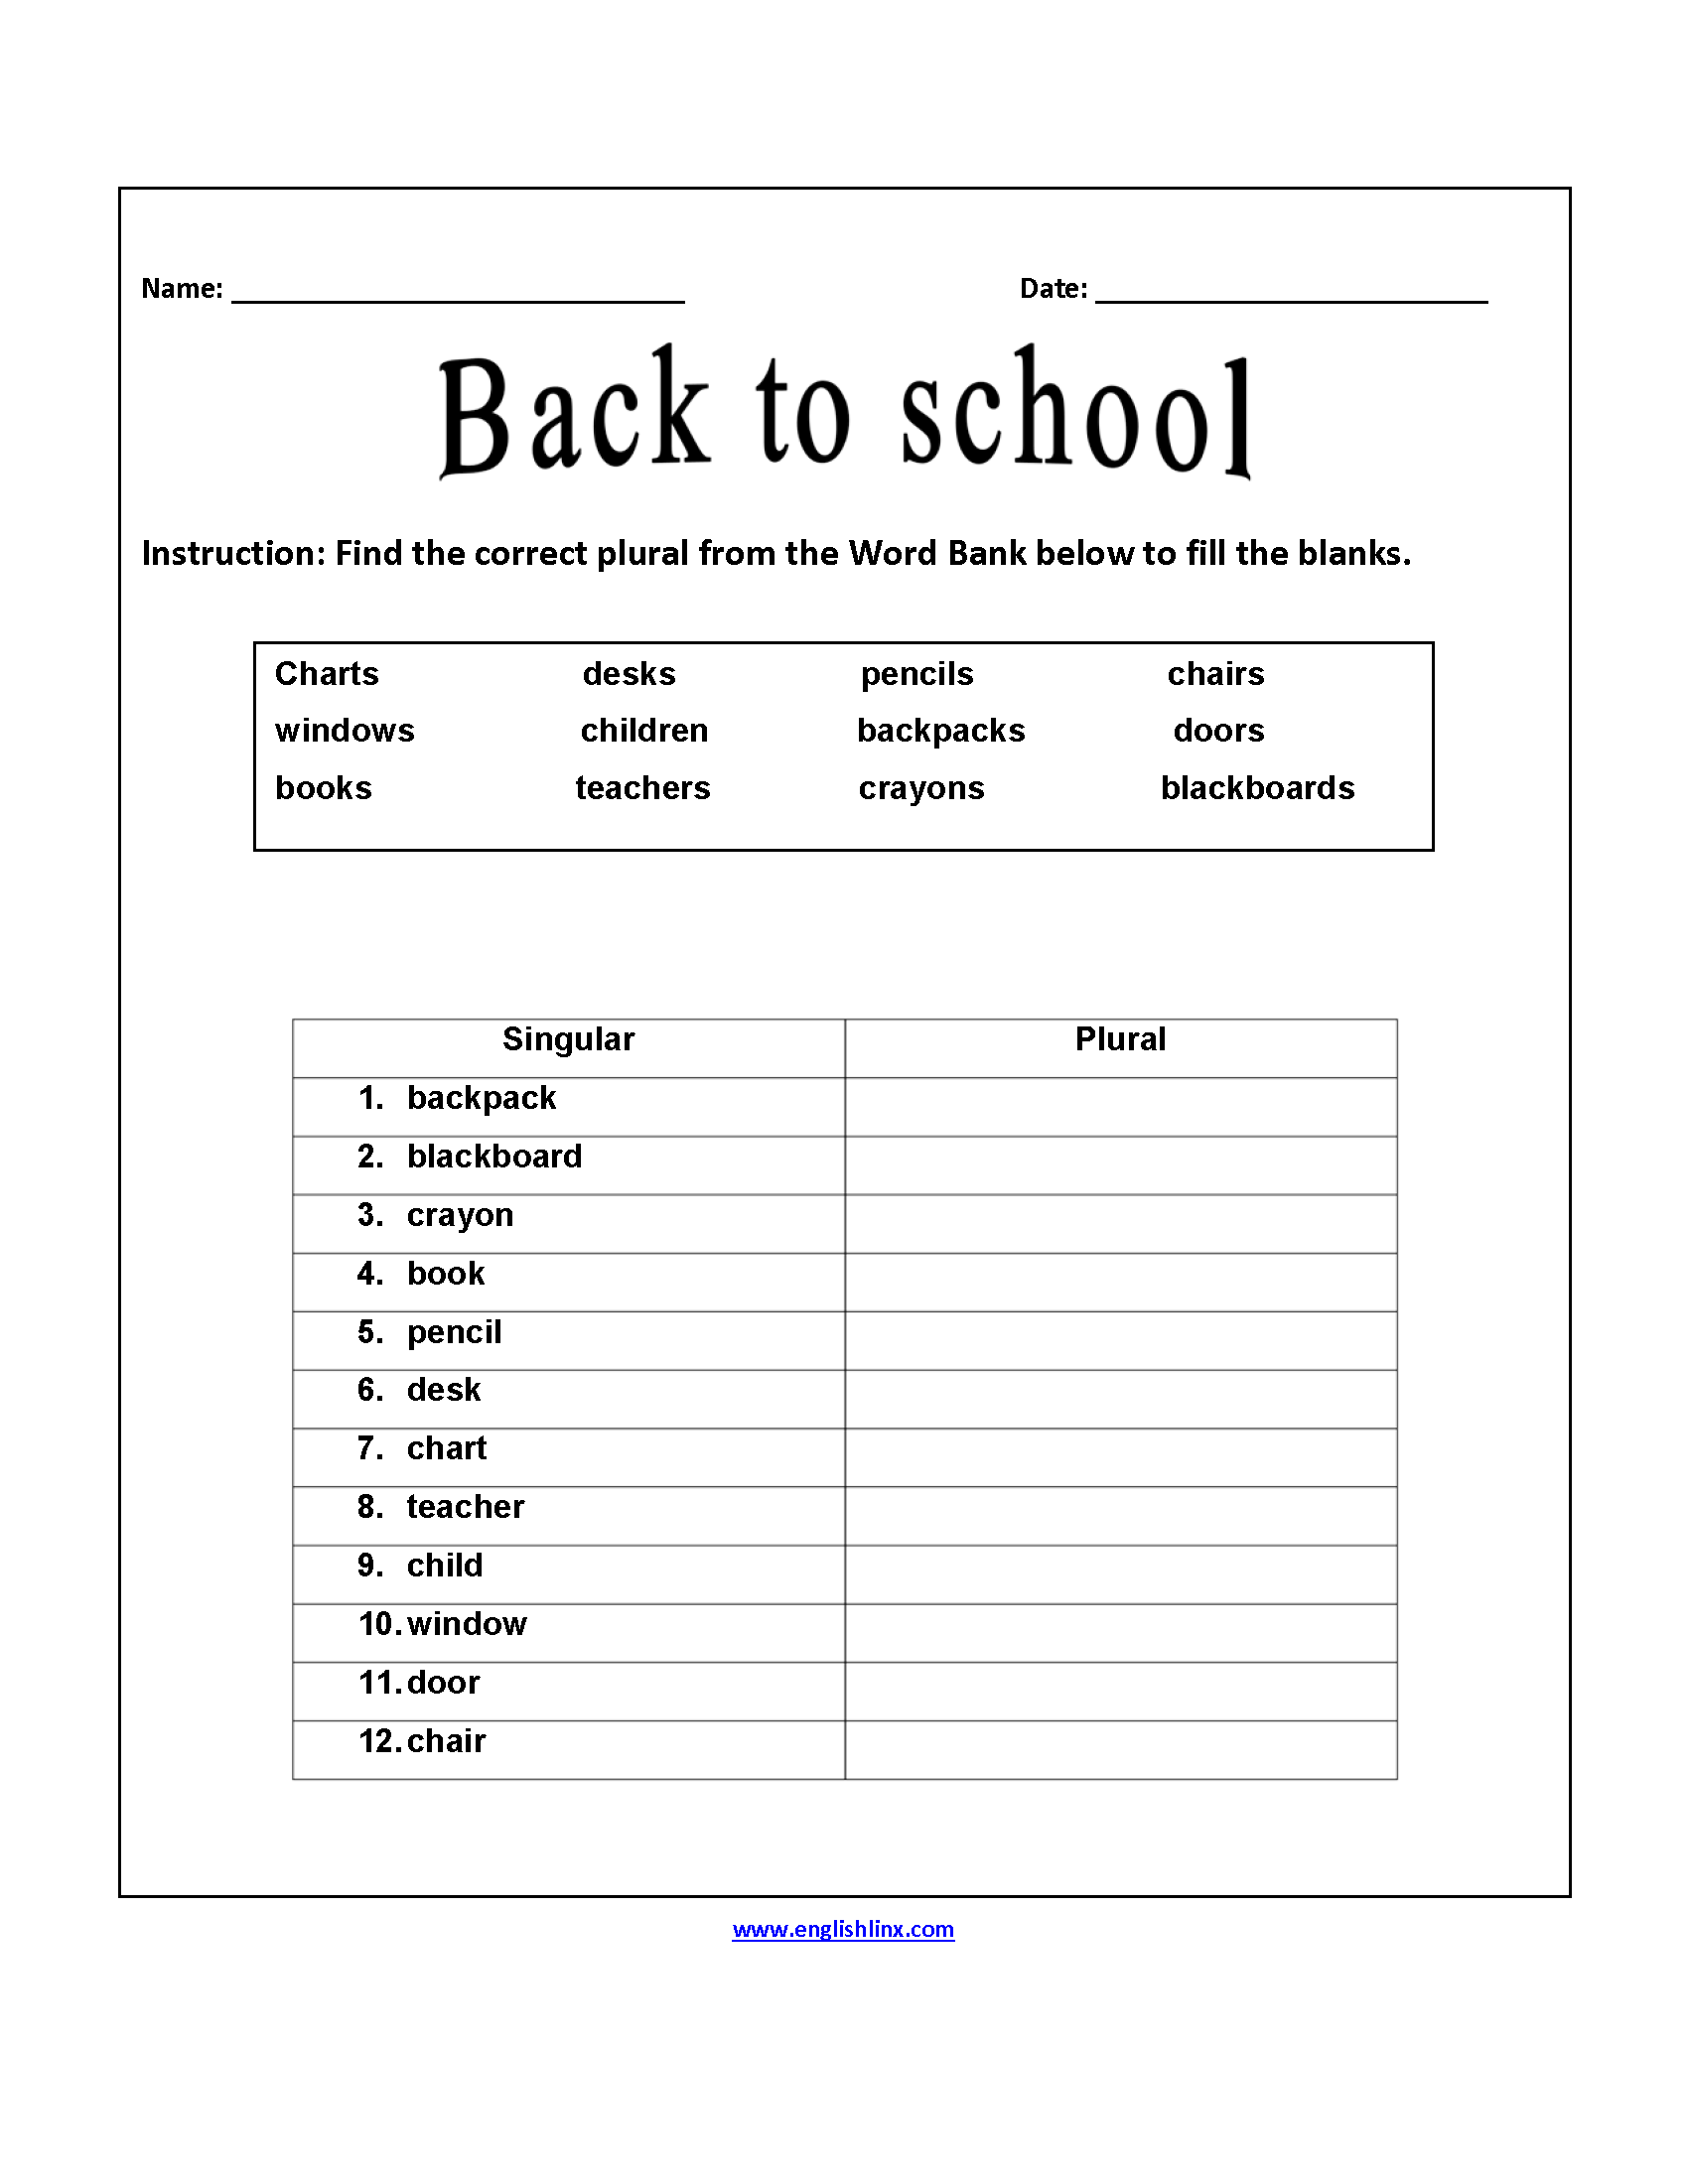 School Worksheets For 3rd Grade : Englishlinx back to school worksheets